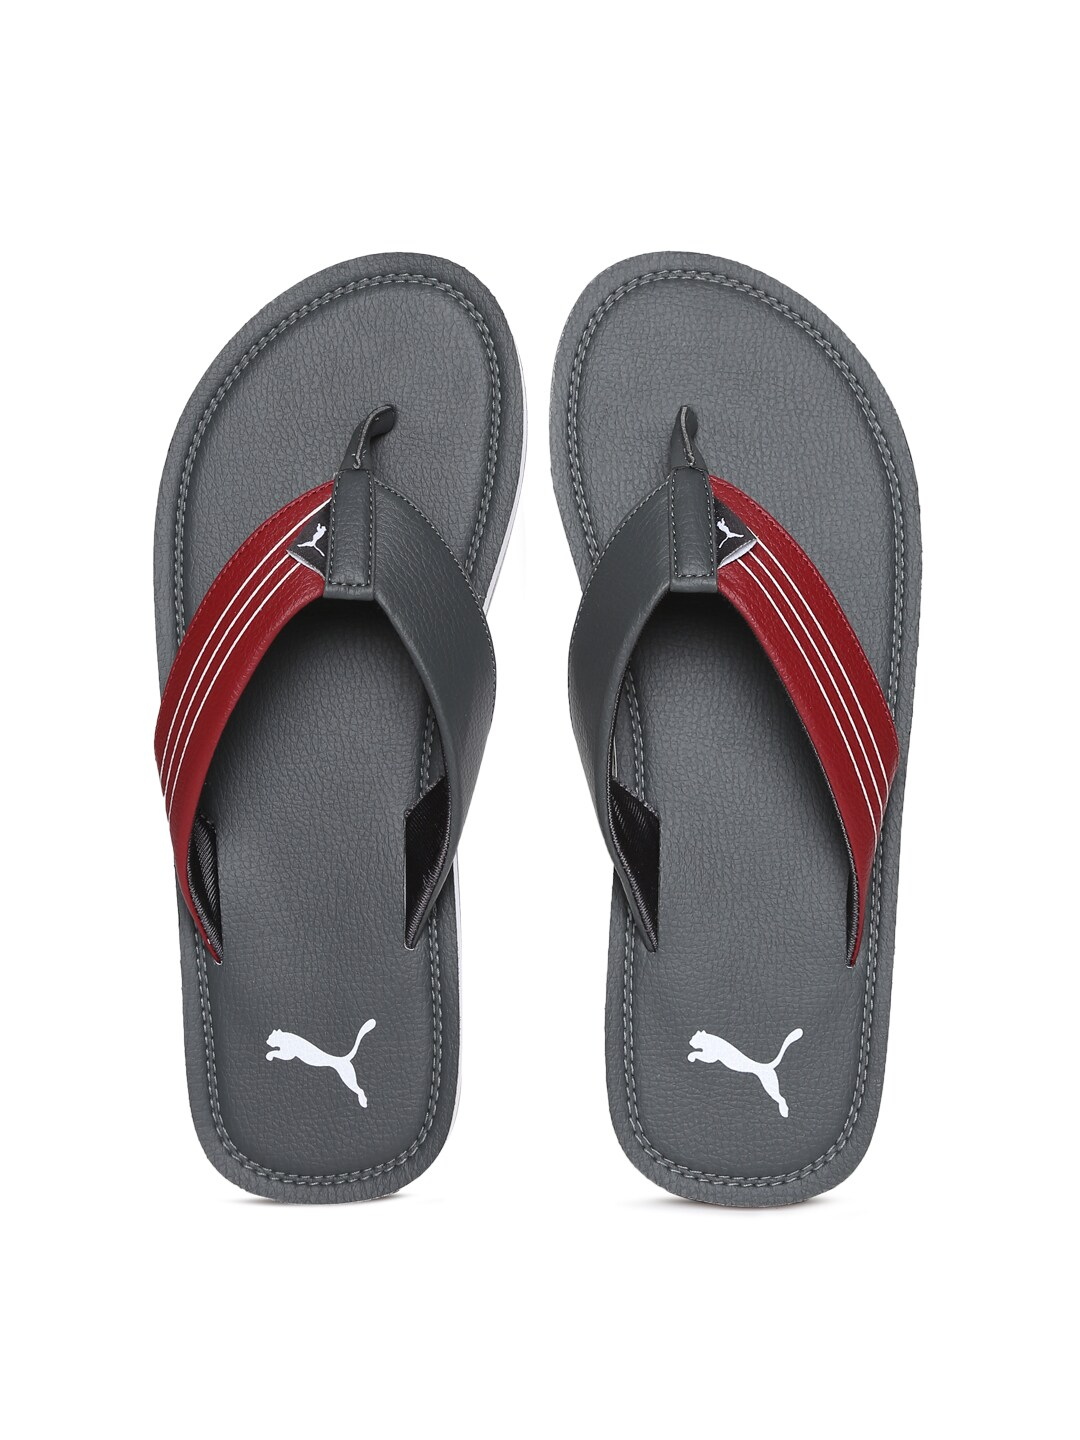 Puma Men Grey & Red Blink Duo IDP Flip-Flops image